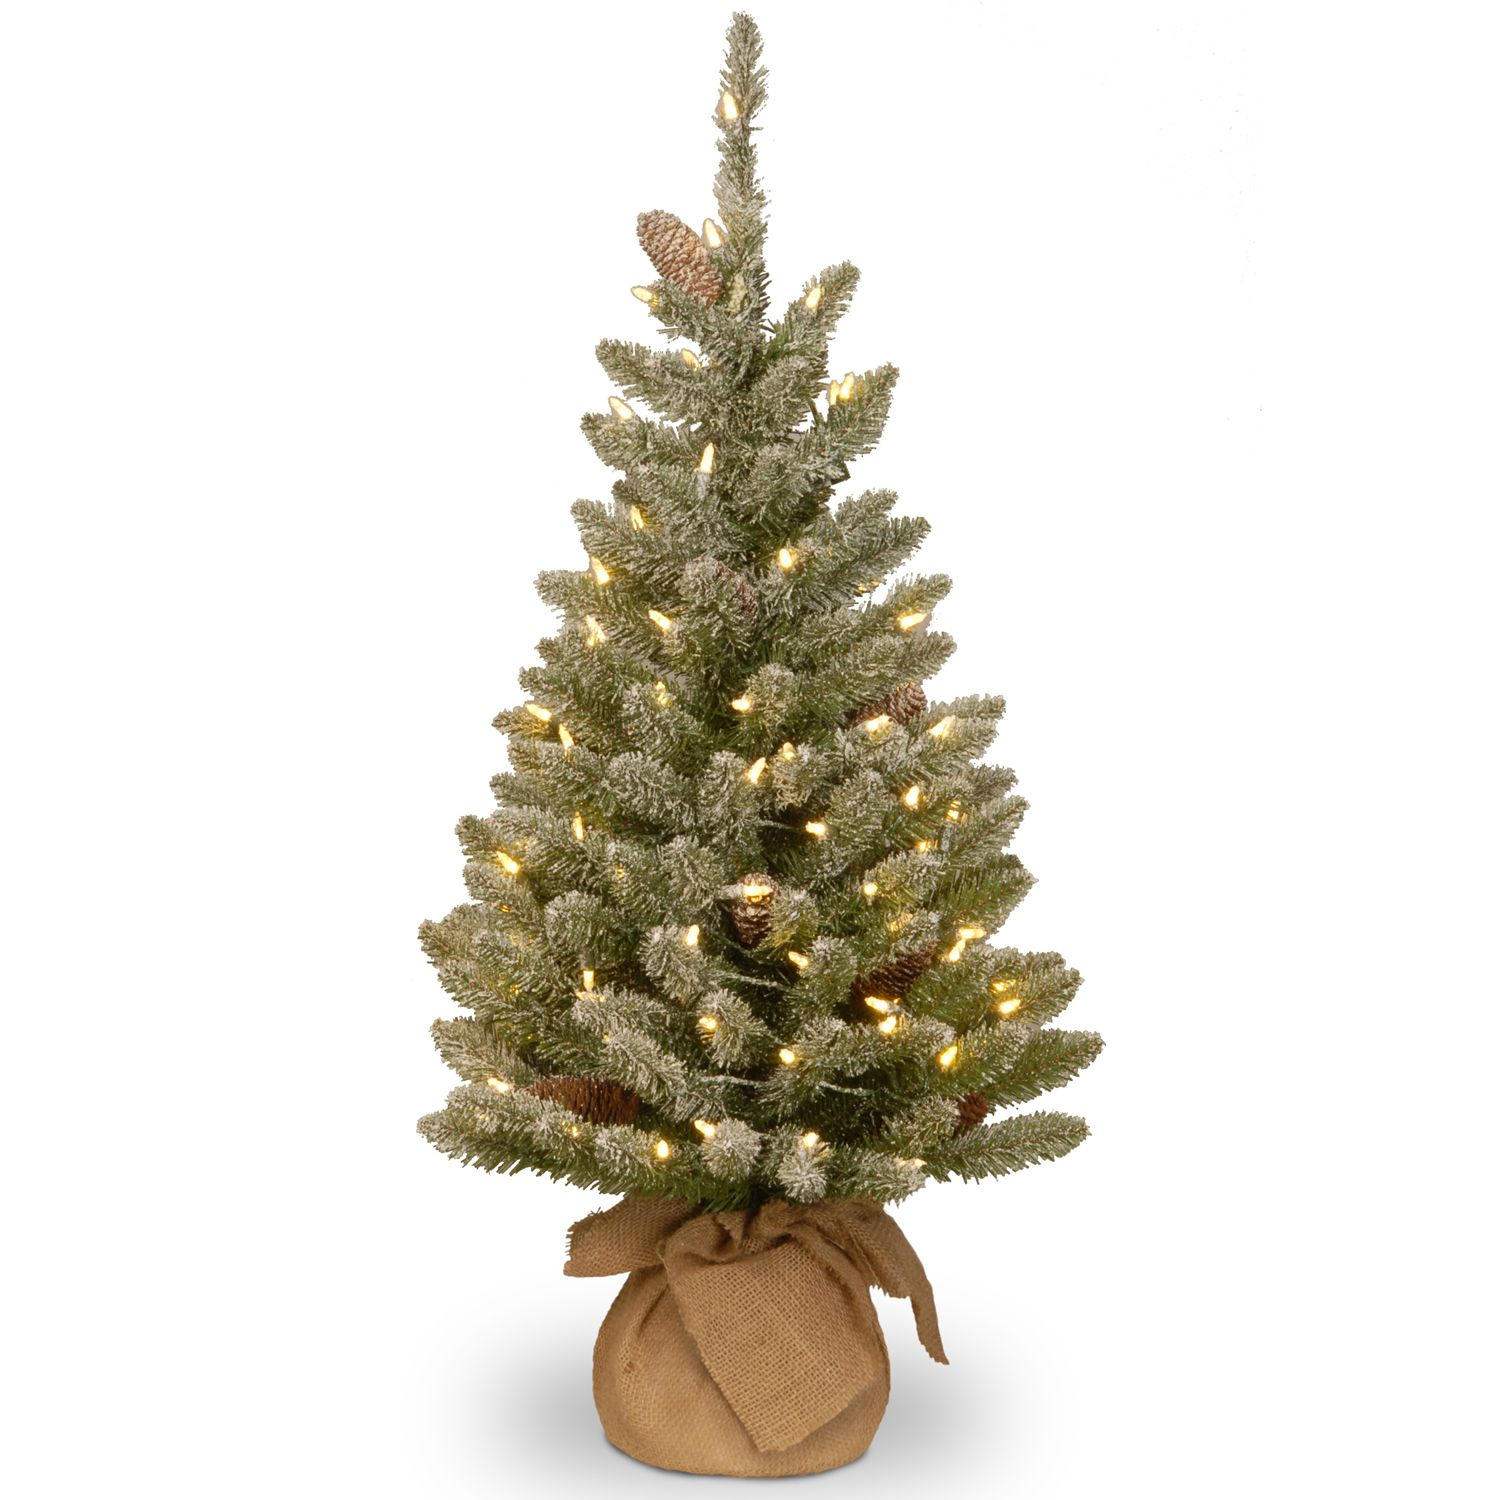 3 Ft. Pre Lit LED Snowy Concolor Fir Christmas Tree In Burlap